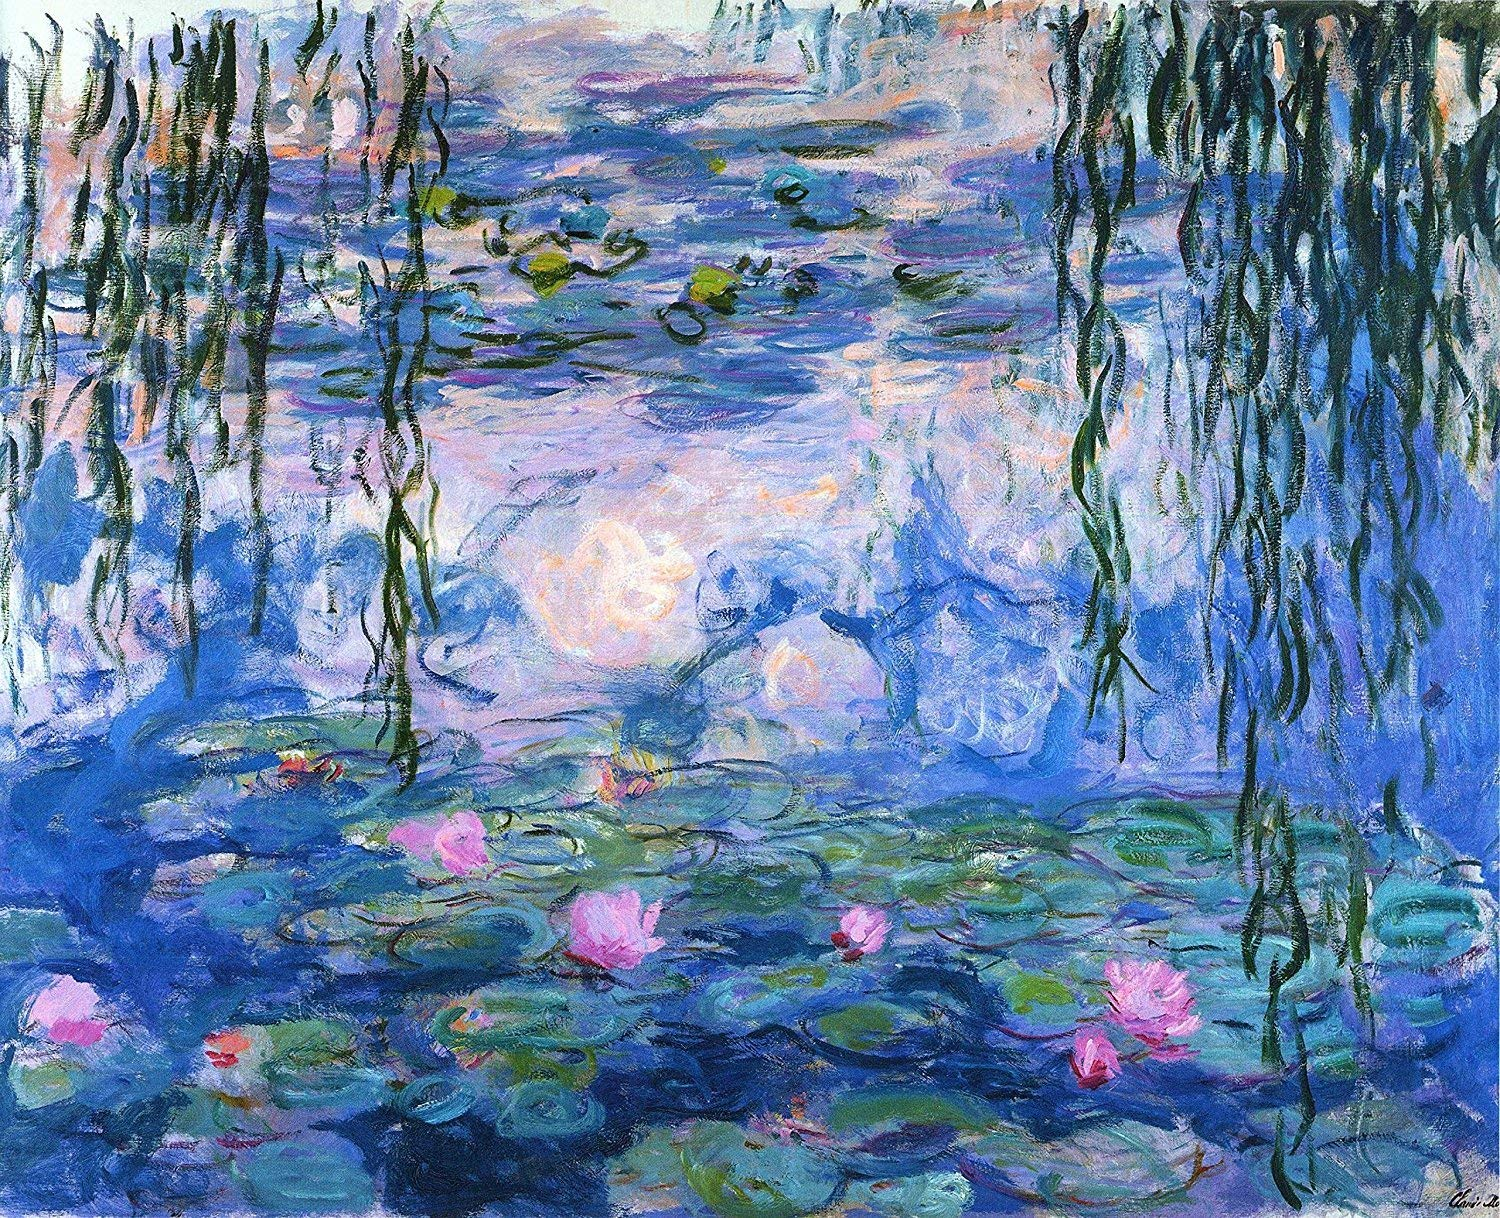 Tallenge - Water Lilies by Claude Monet - XS Size Rolled Art Paper Print(9 X 12 inches) -Multi-Color: Amazon.in: Home & Kitchen